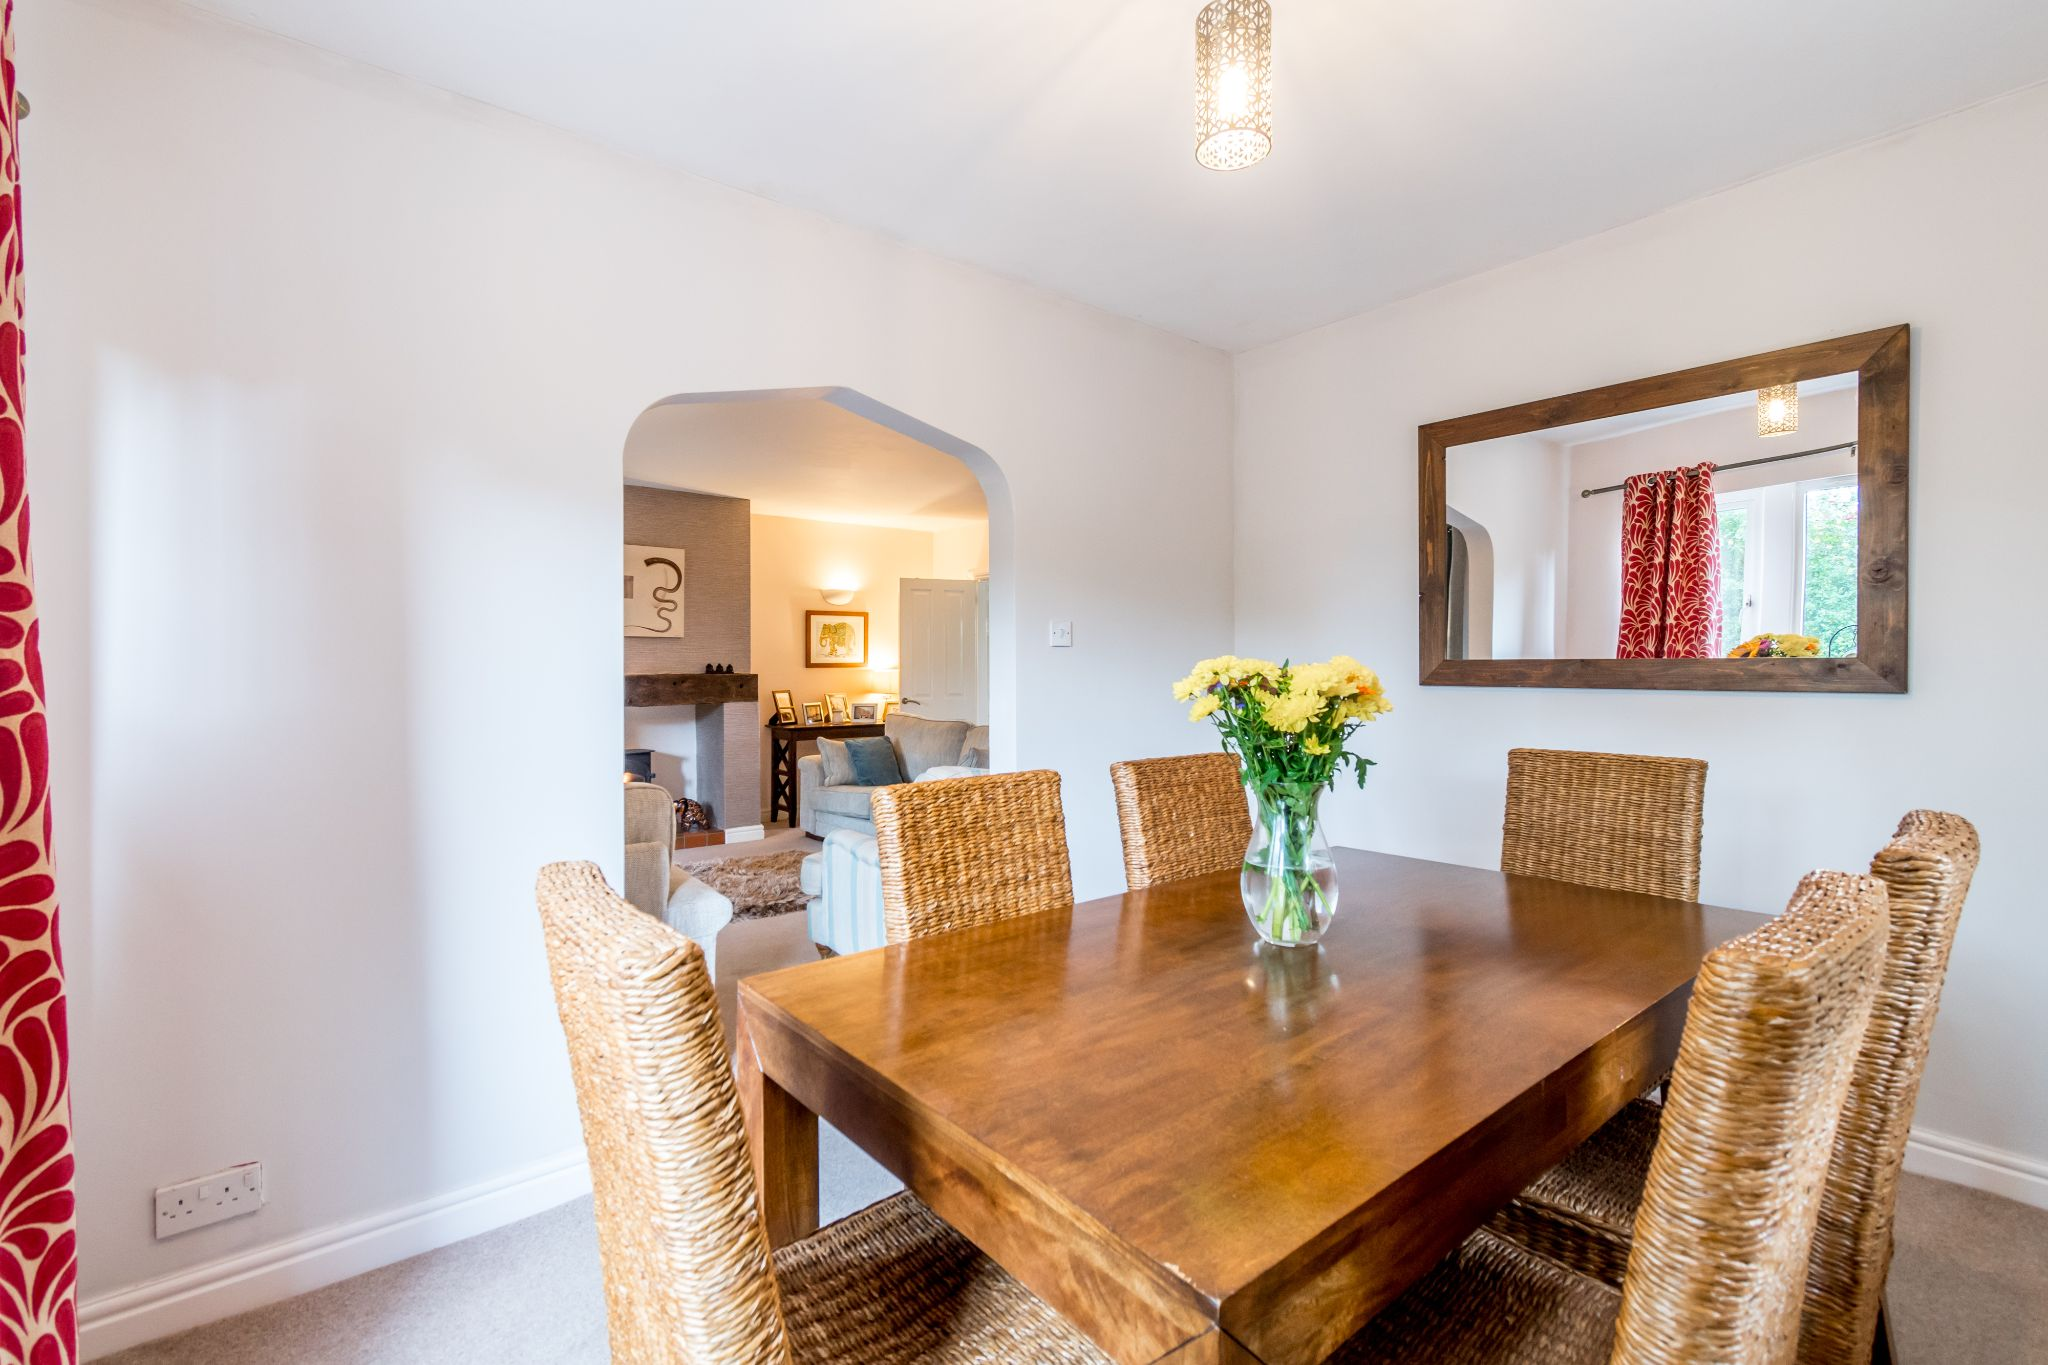 5 bedroom detached house SSTC in Brighouse - Dining room